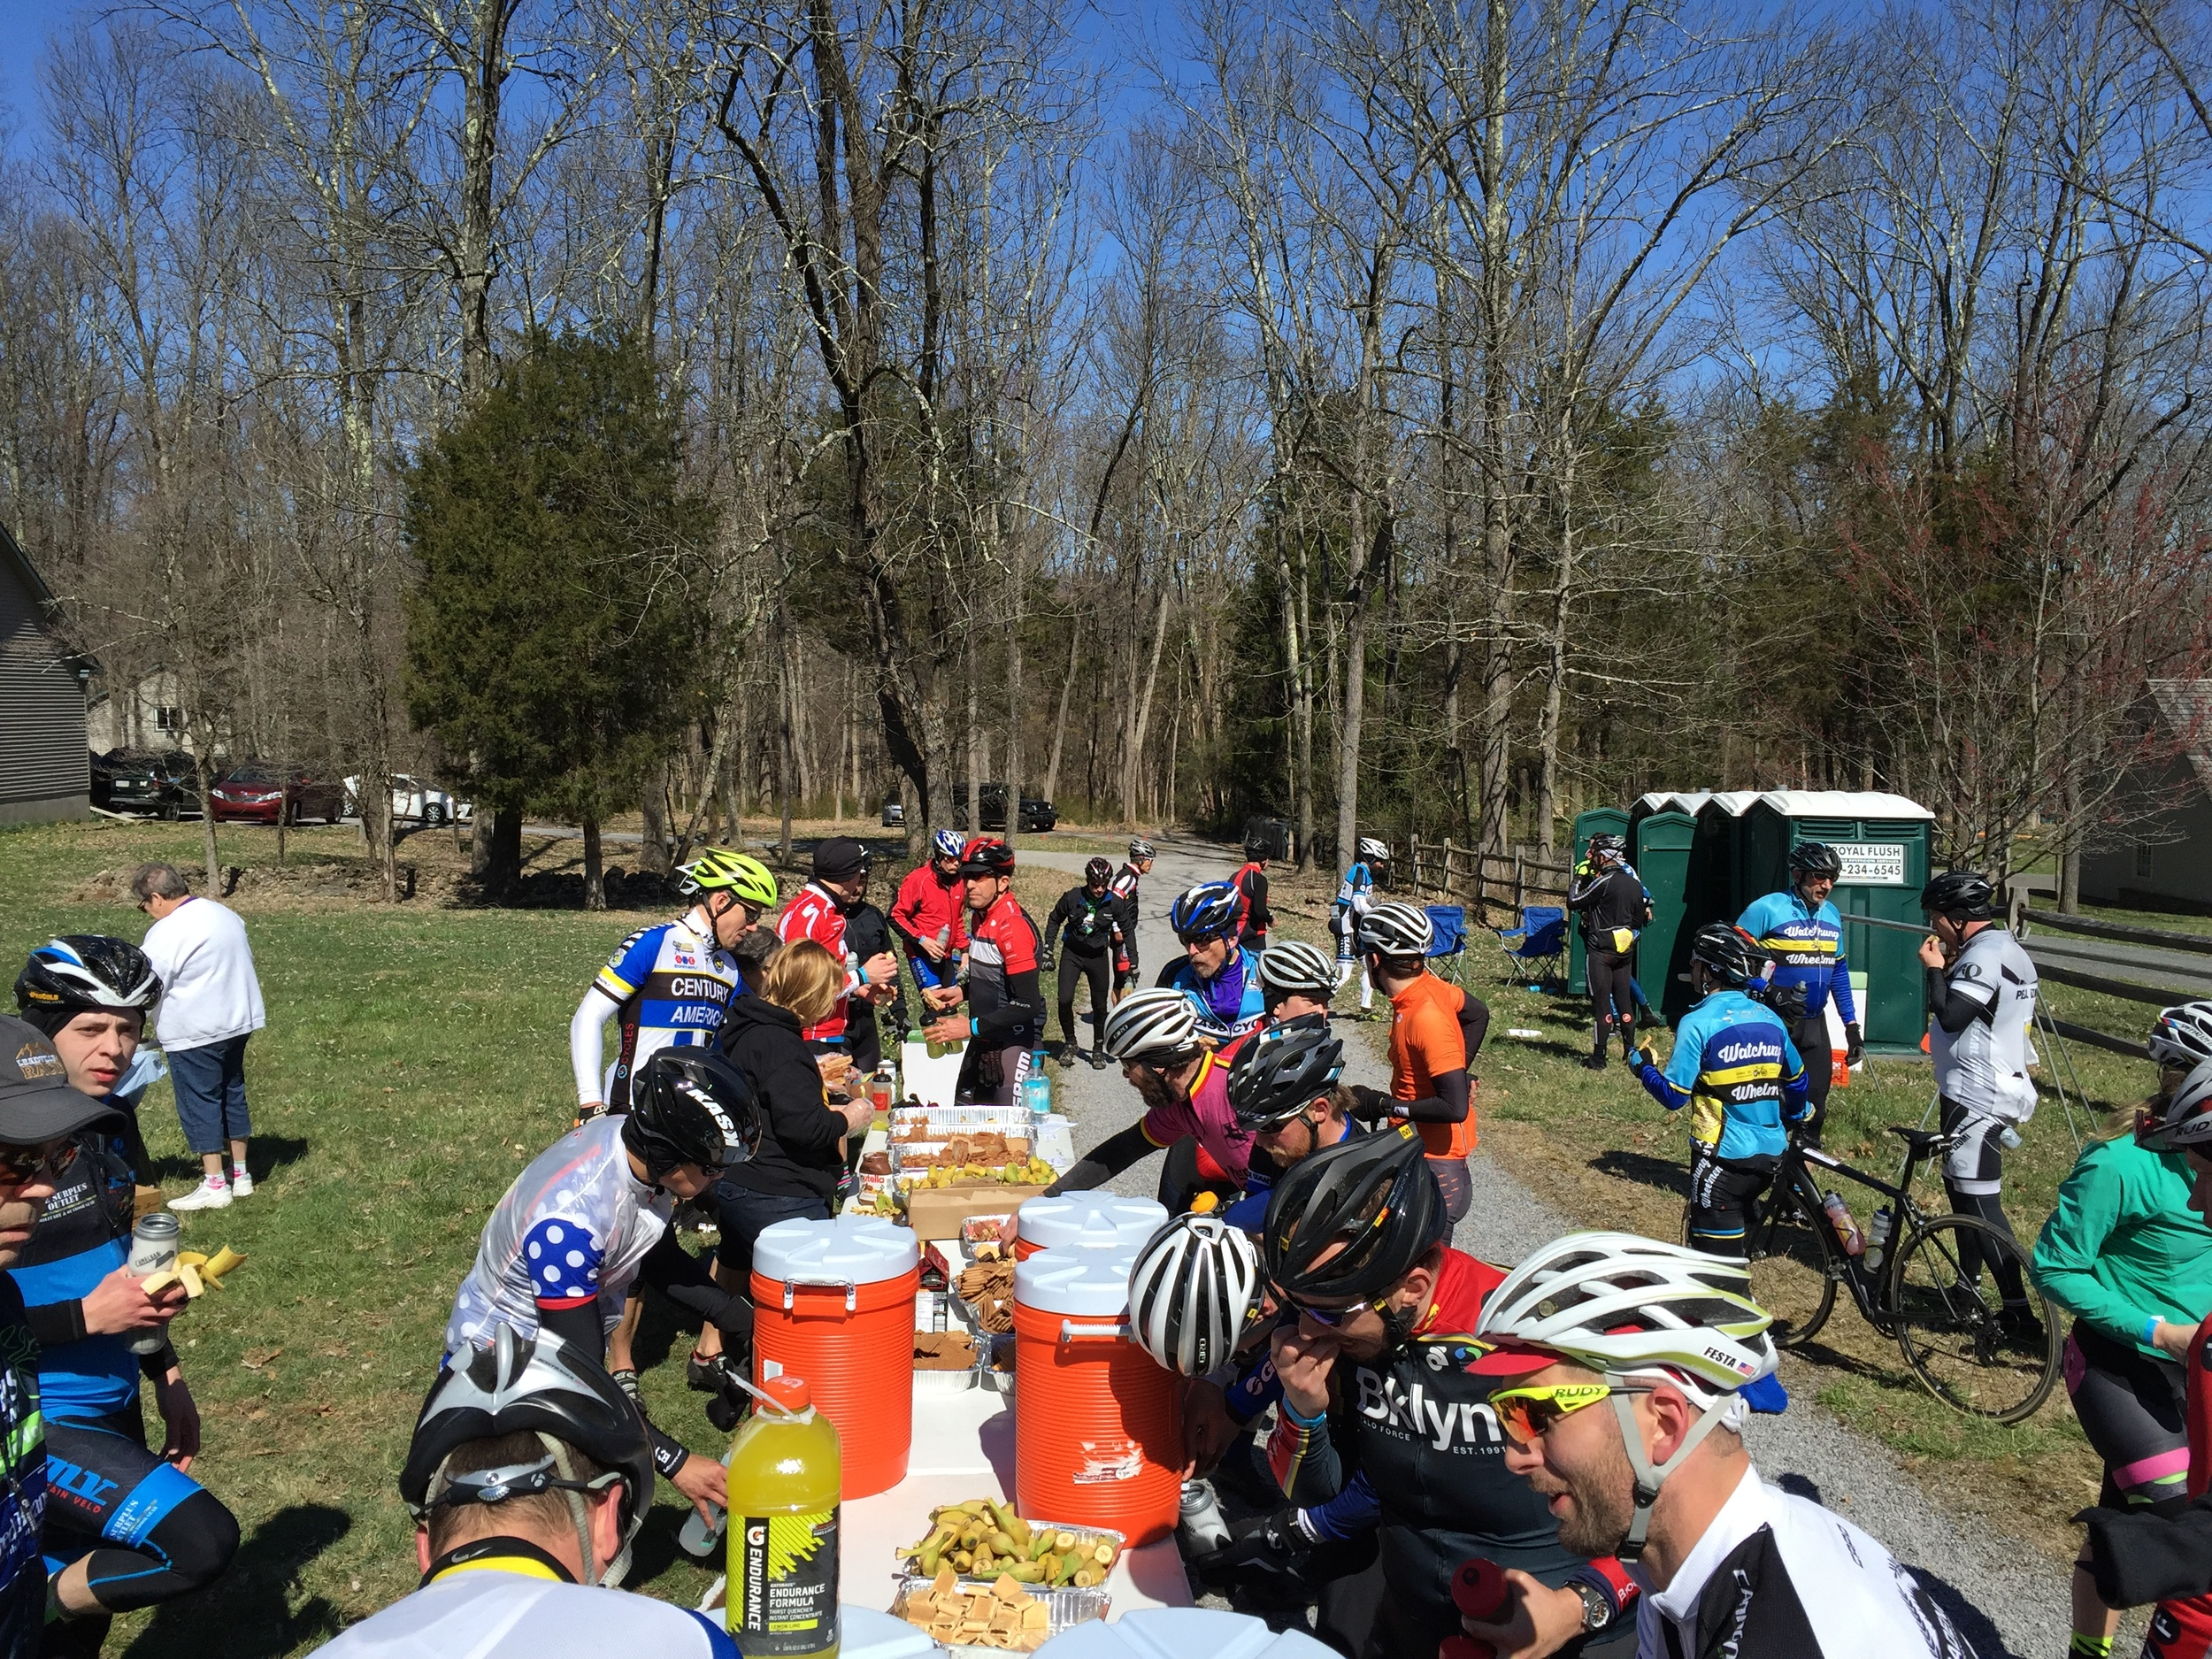 The first rest stop on Strimples Mill Road.